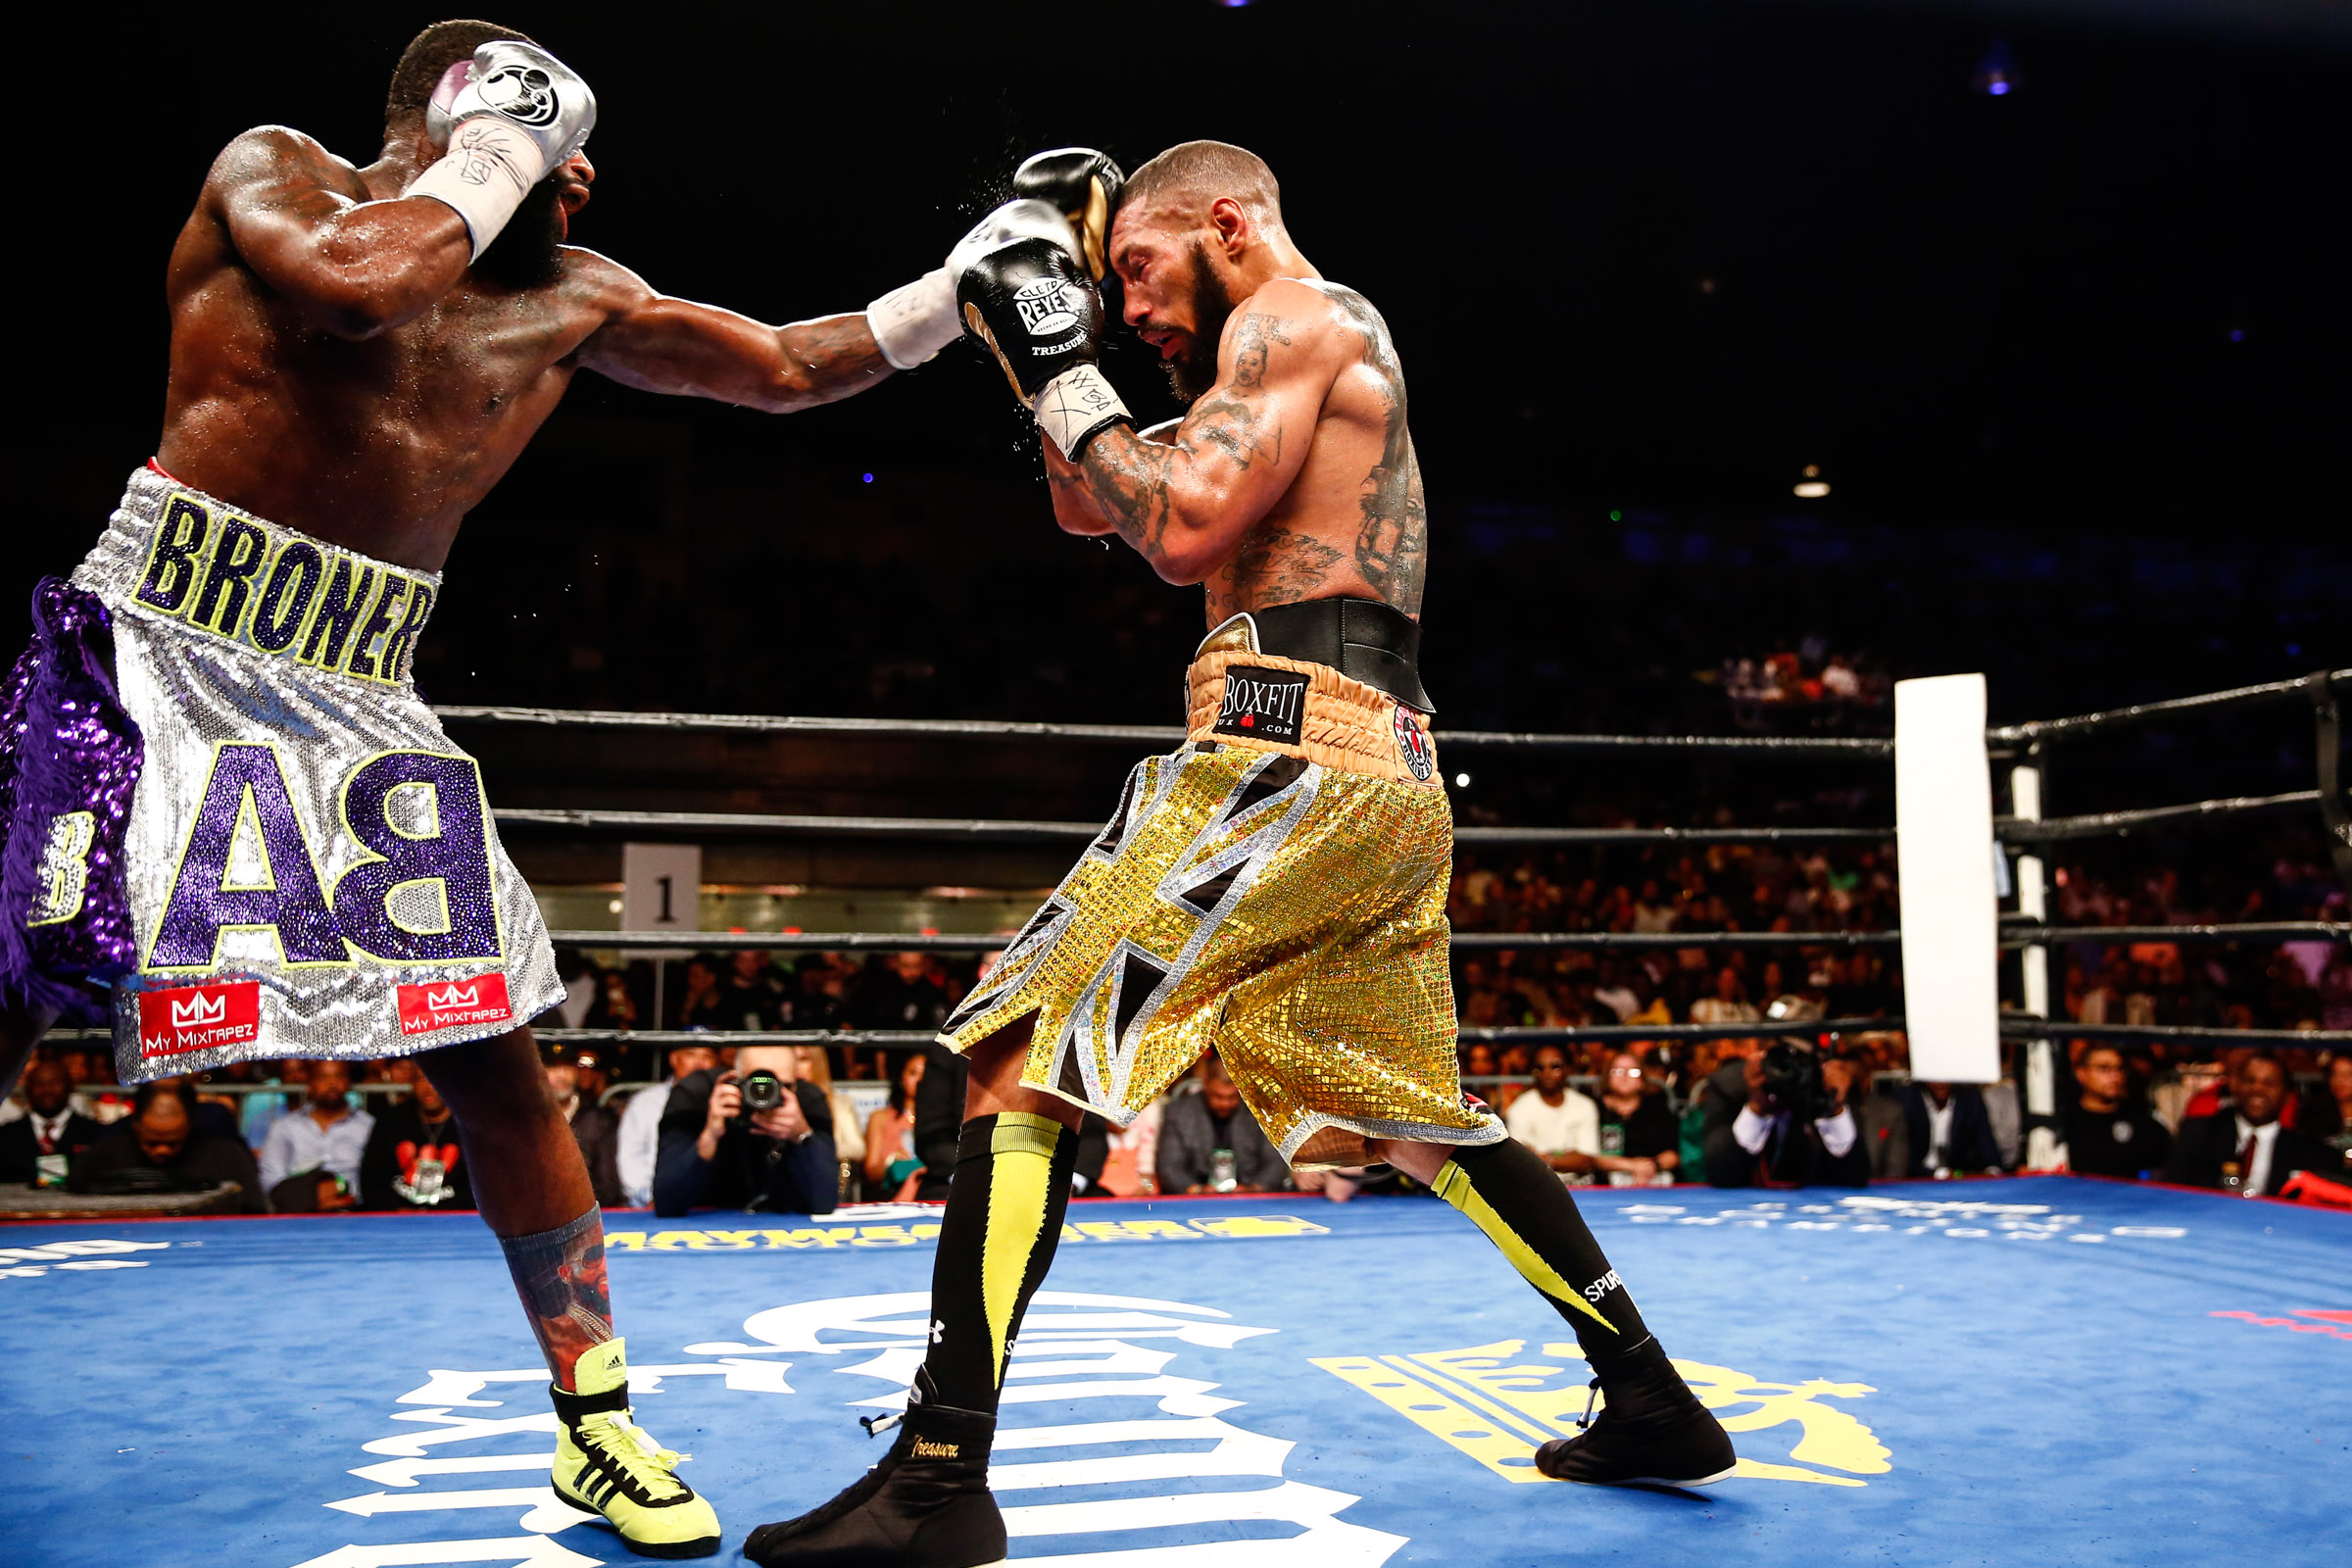 LR_FIGHT NIGHT-BRONER vs THEOPHANE-04012016-8539.jpg